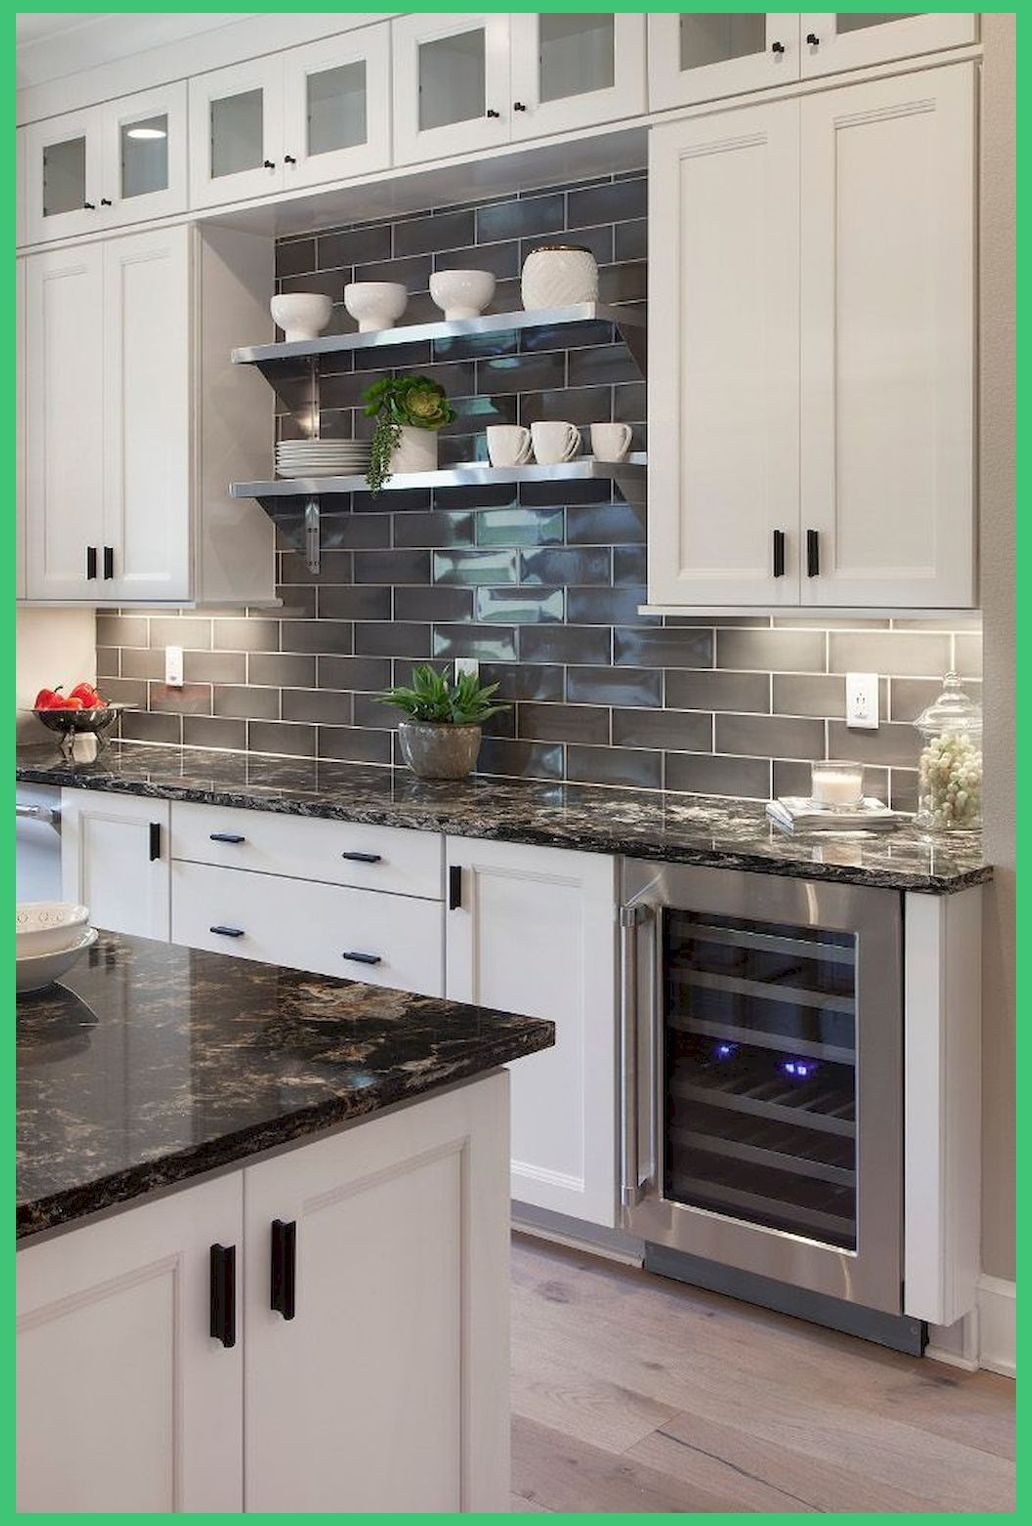 Pros And Cons Of Stainless Steel Backsplash Kitchen Design